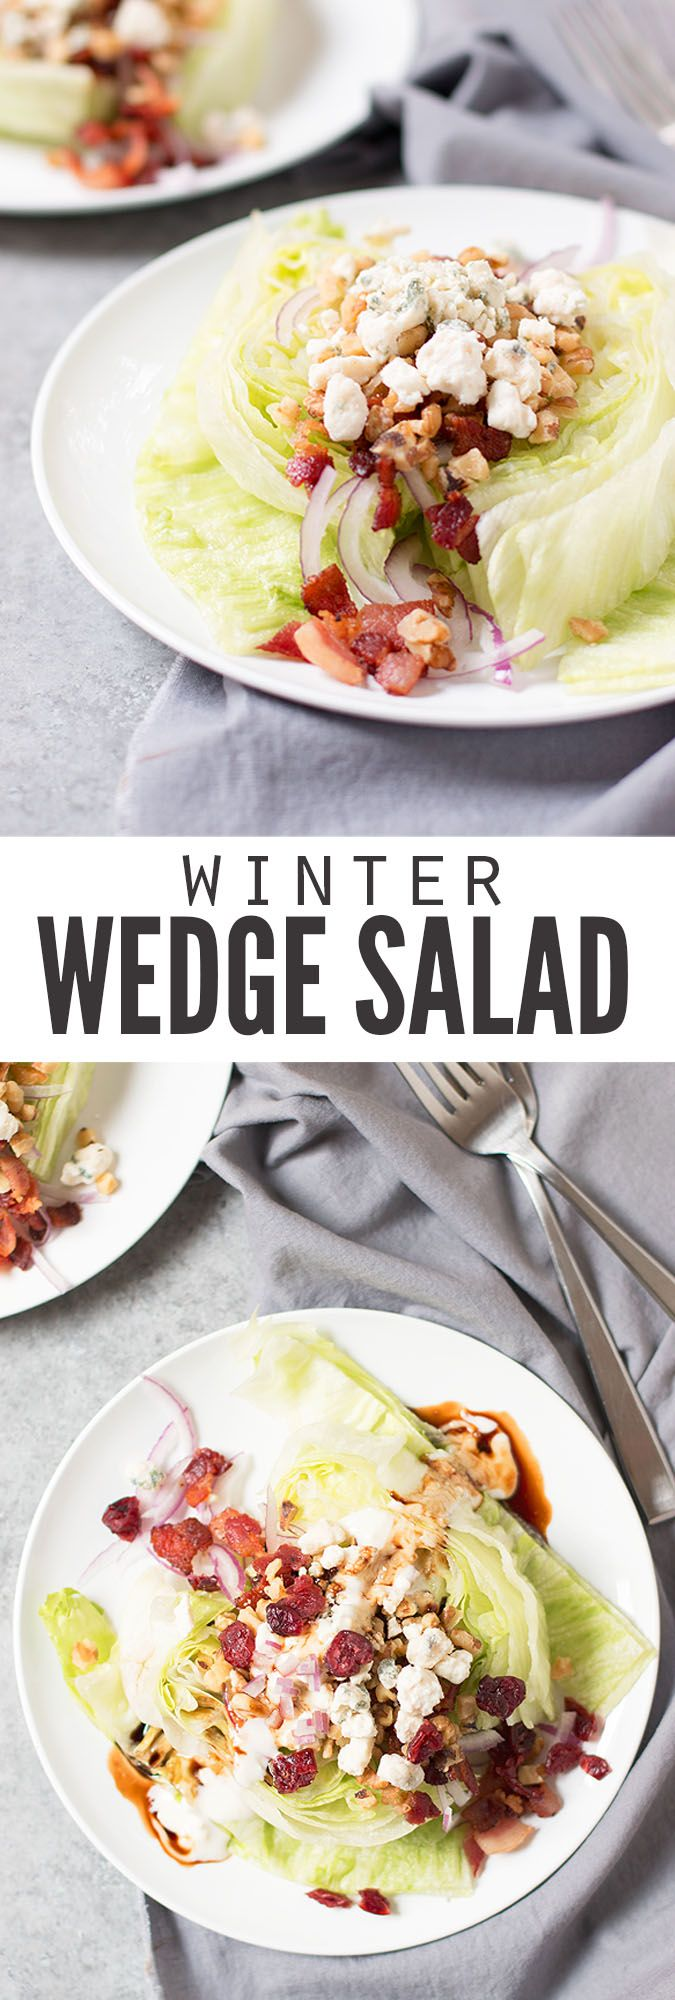 A perfect wedge salad for cooler temperatures. Topped with bacon, blue cheese and an incredible maple glaze - the perfect escape from stews and casseroles! :: DontWastetheCrumbs.com